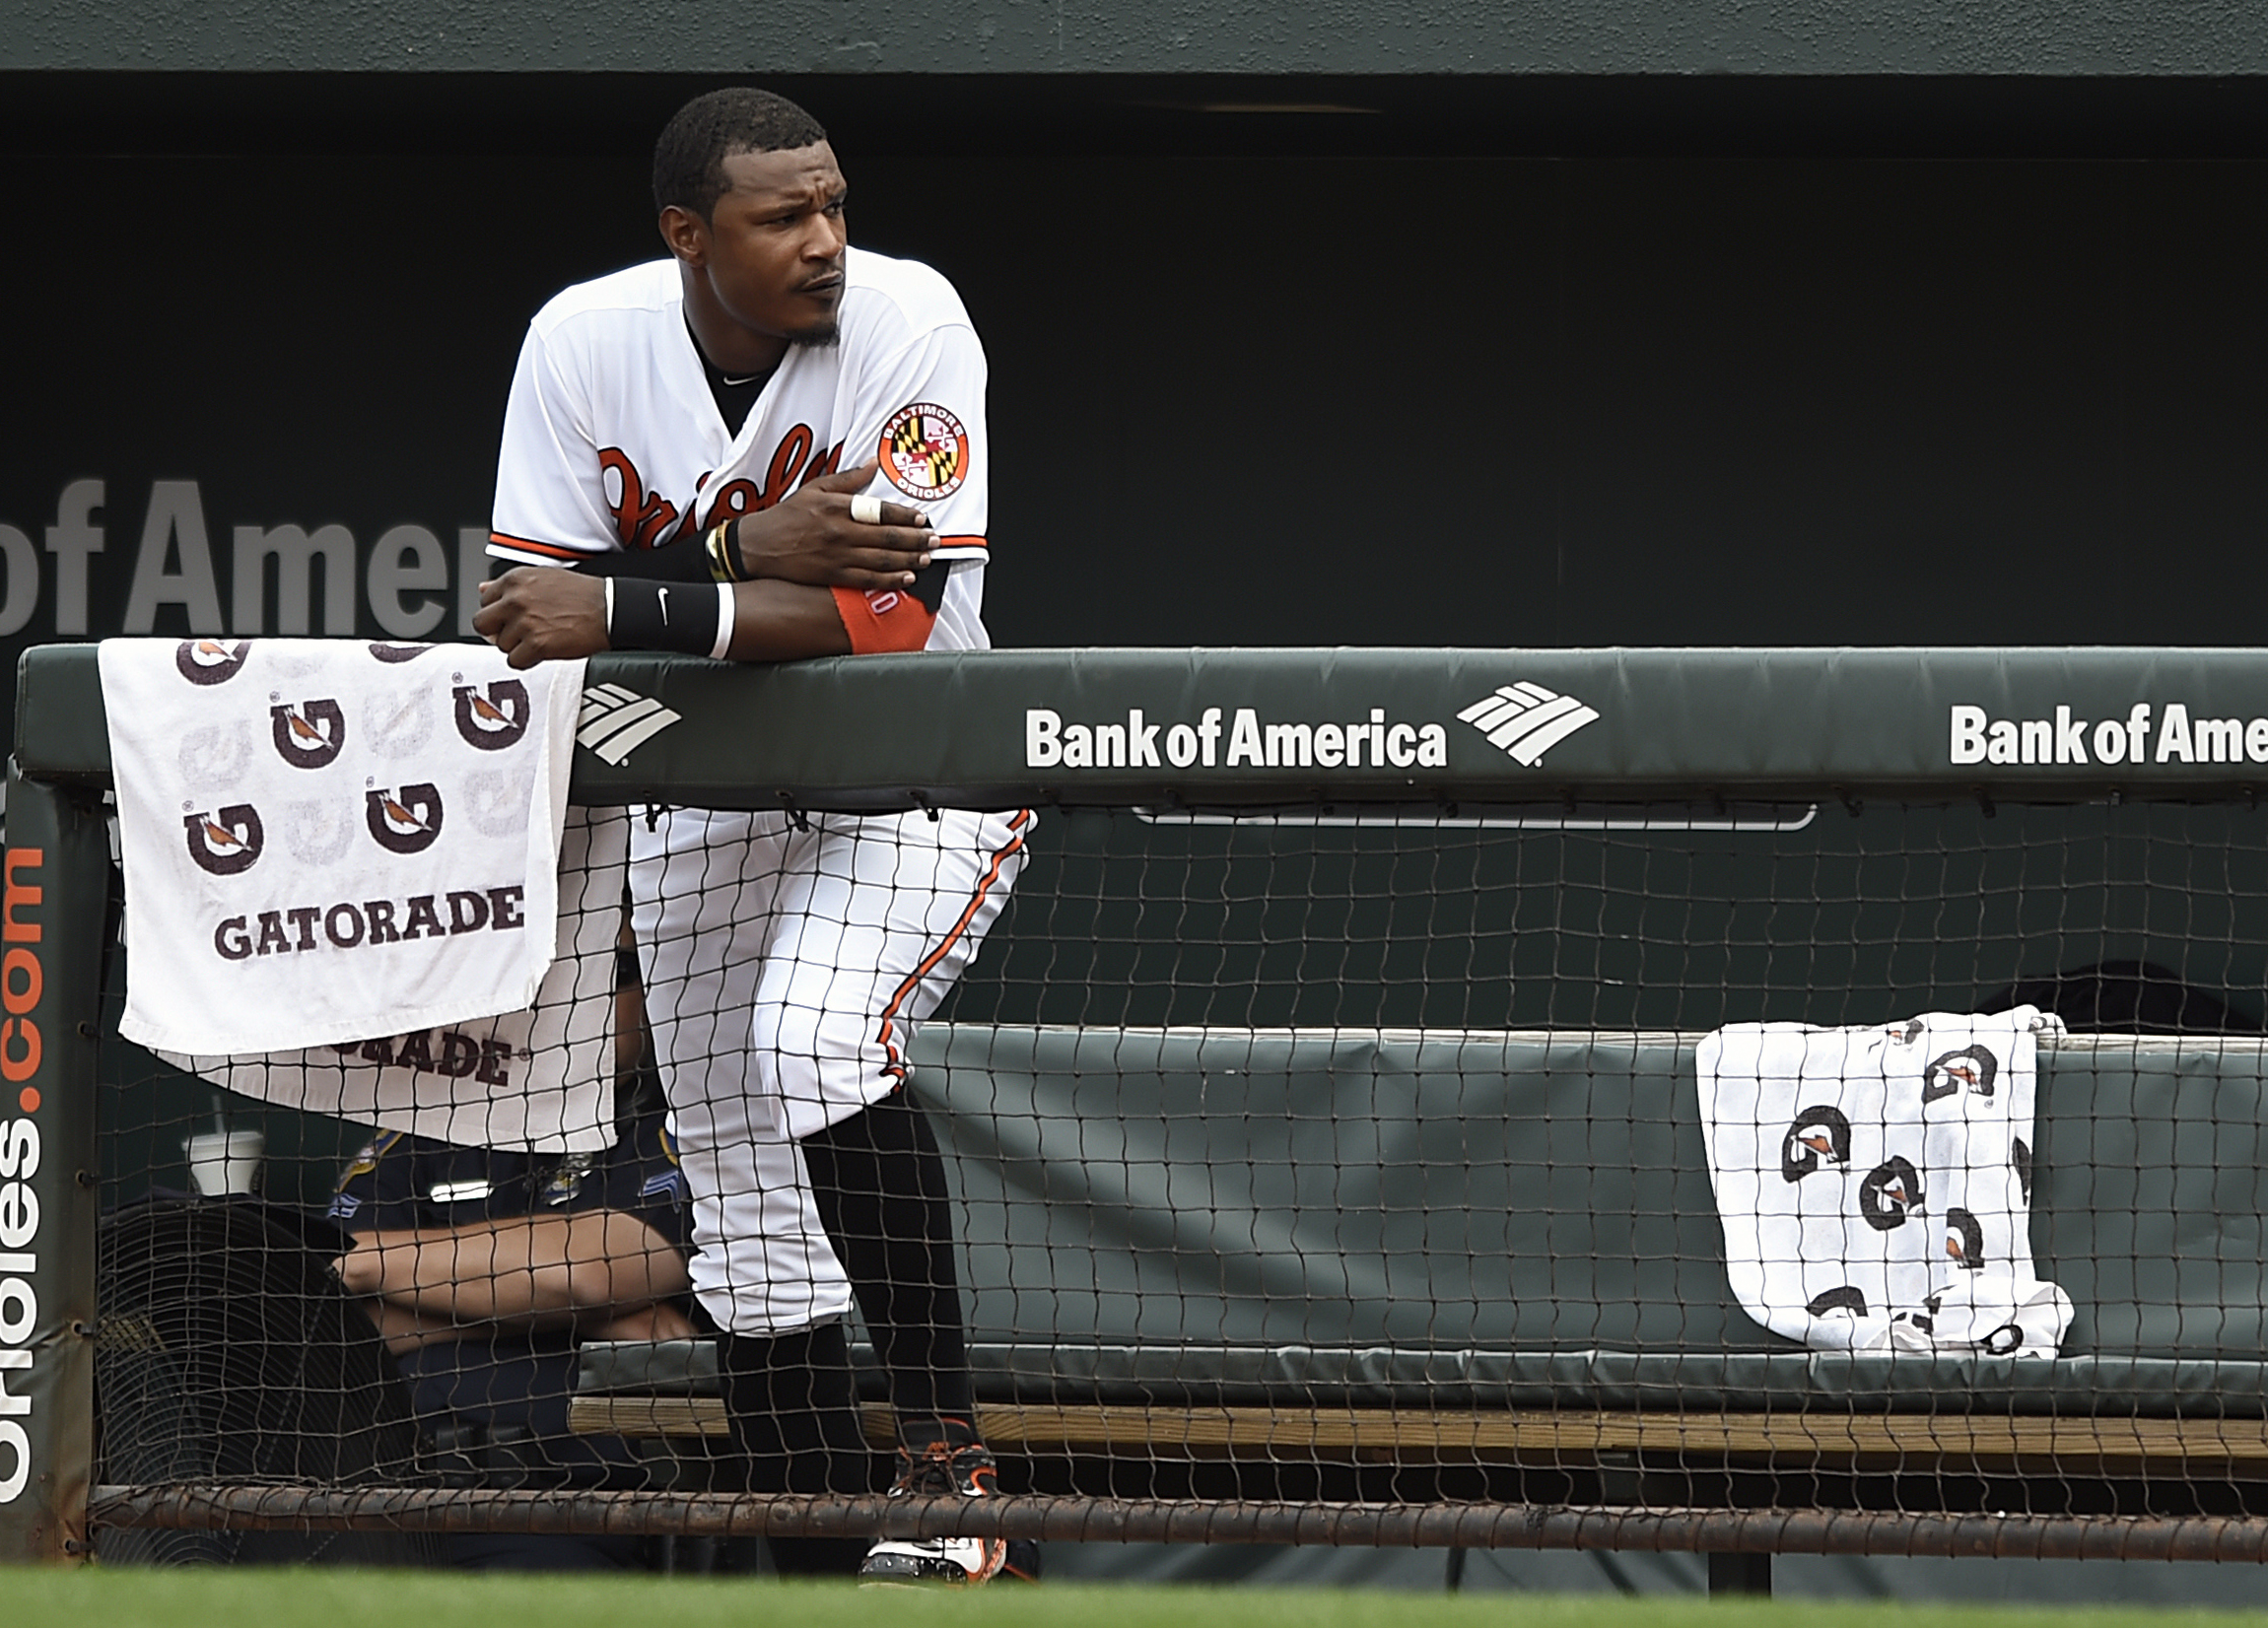 Baltimore Orioles' Adam Jones watches from the dugout in the eighth inning of a baseball game against the Washington Nationals, Sunday, July 12, 2015, in Baltimore. The Nationals won 3-2. (AP Photo/Gail Burton)